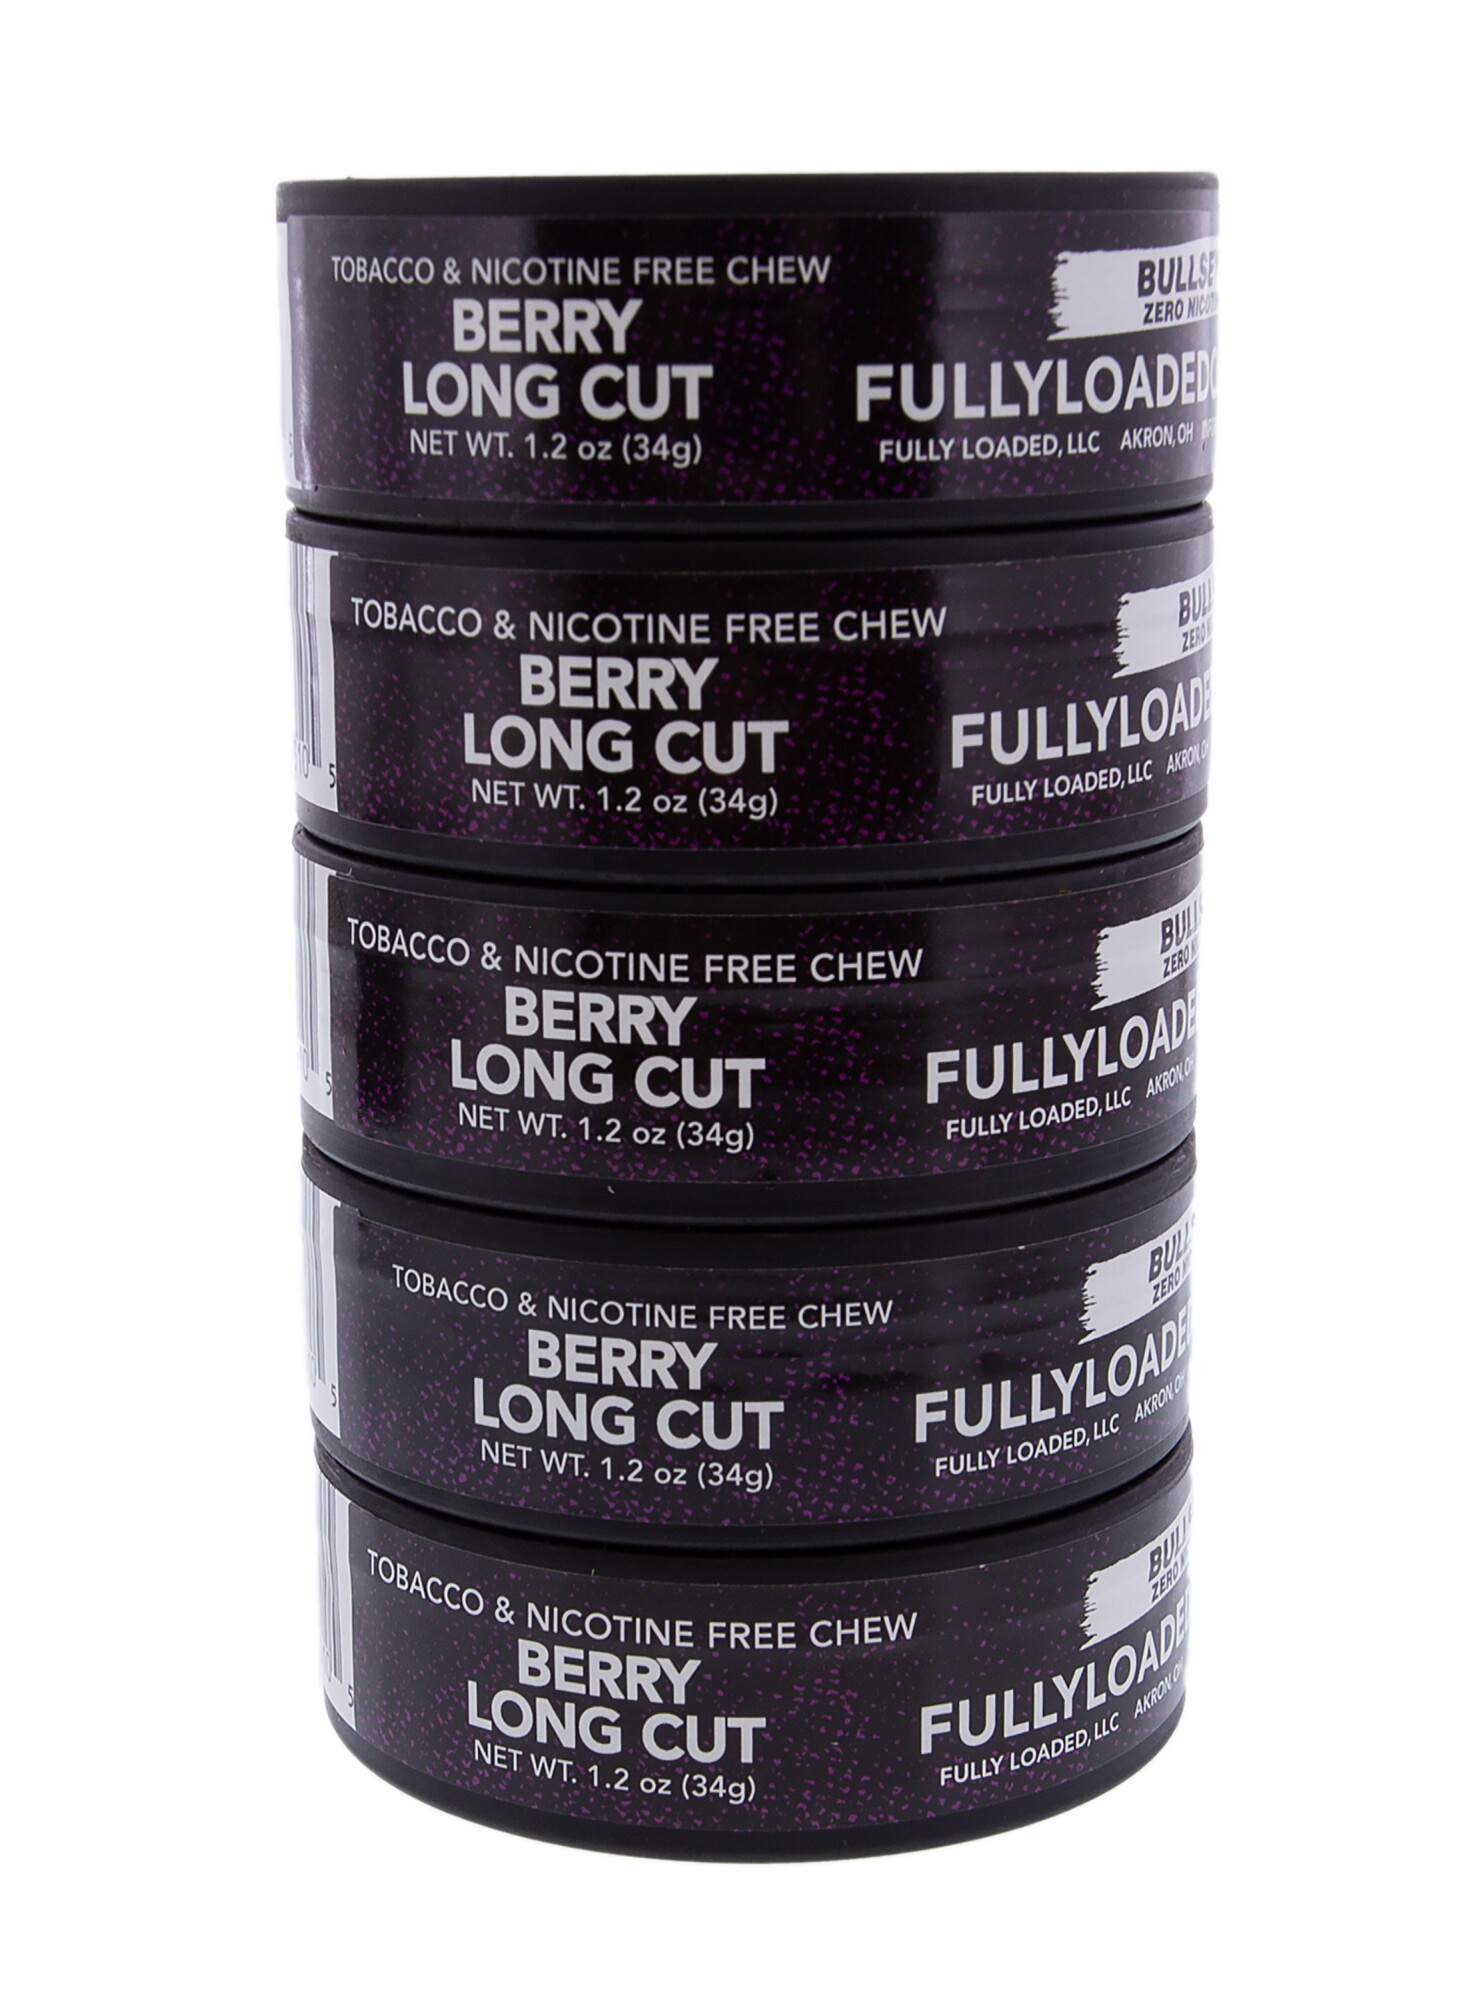 Fully Loaded Chew Tobacco and Nicotine Free Berry Bullseye Long Cut Popping Flavor, Chewing Alternative-5 Cans